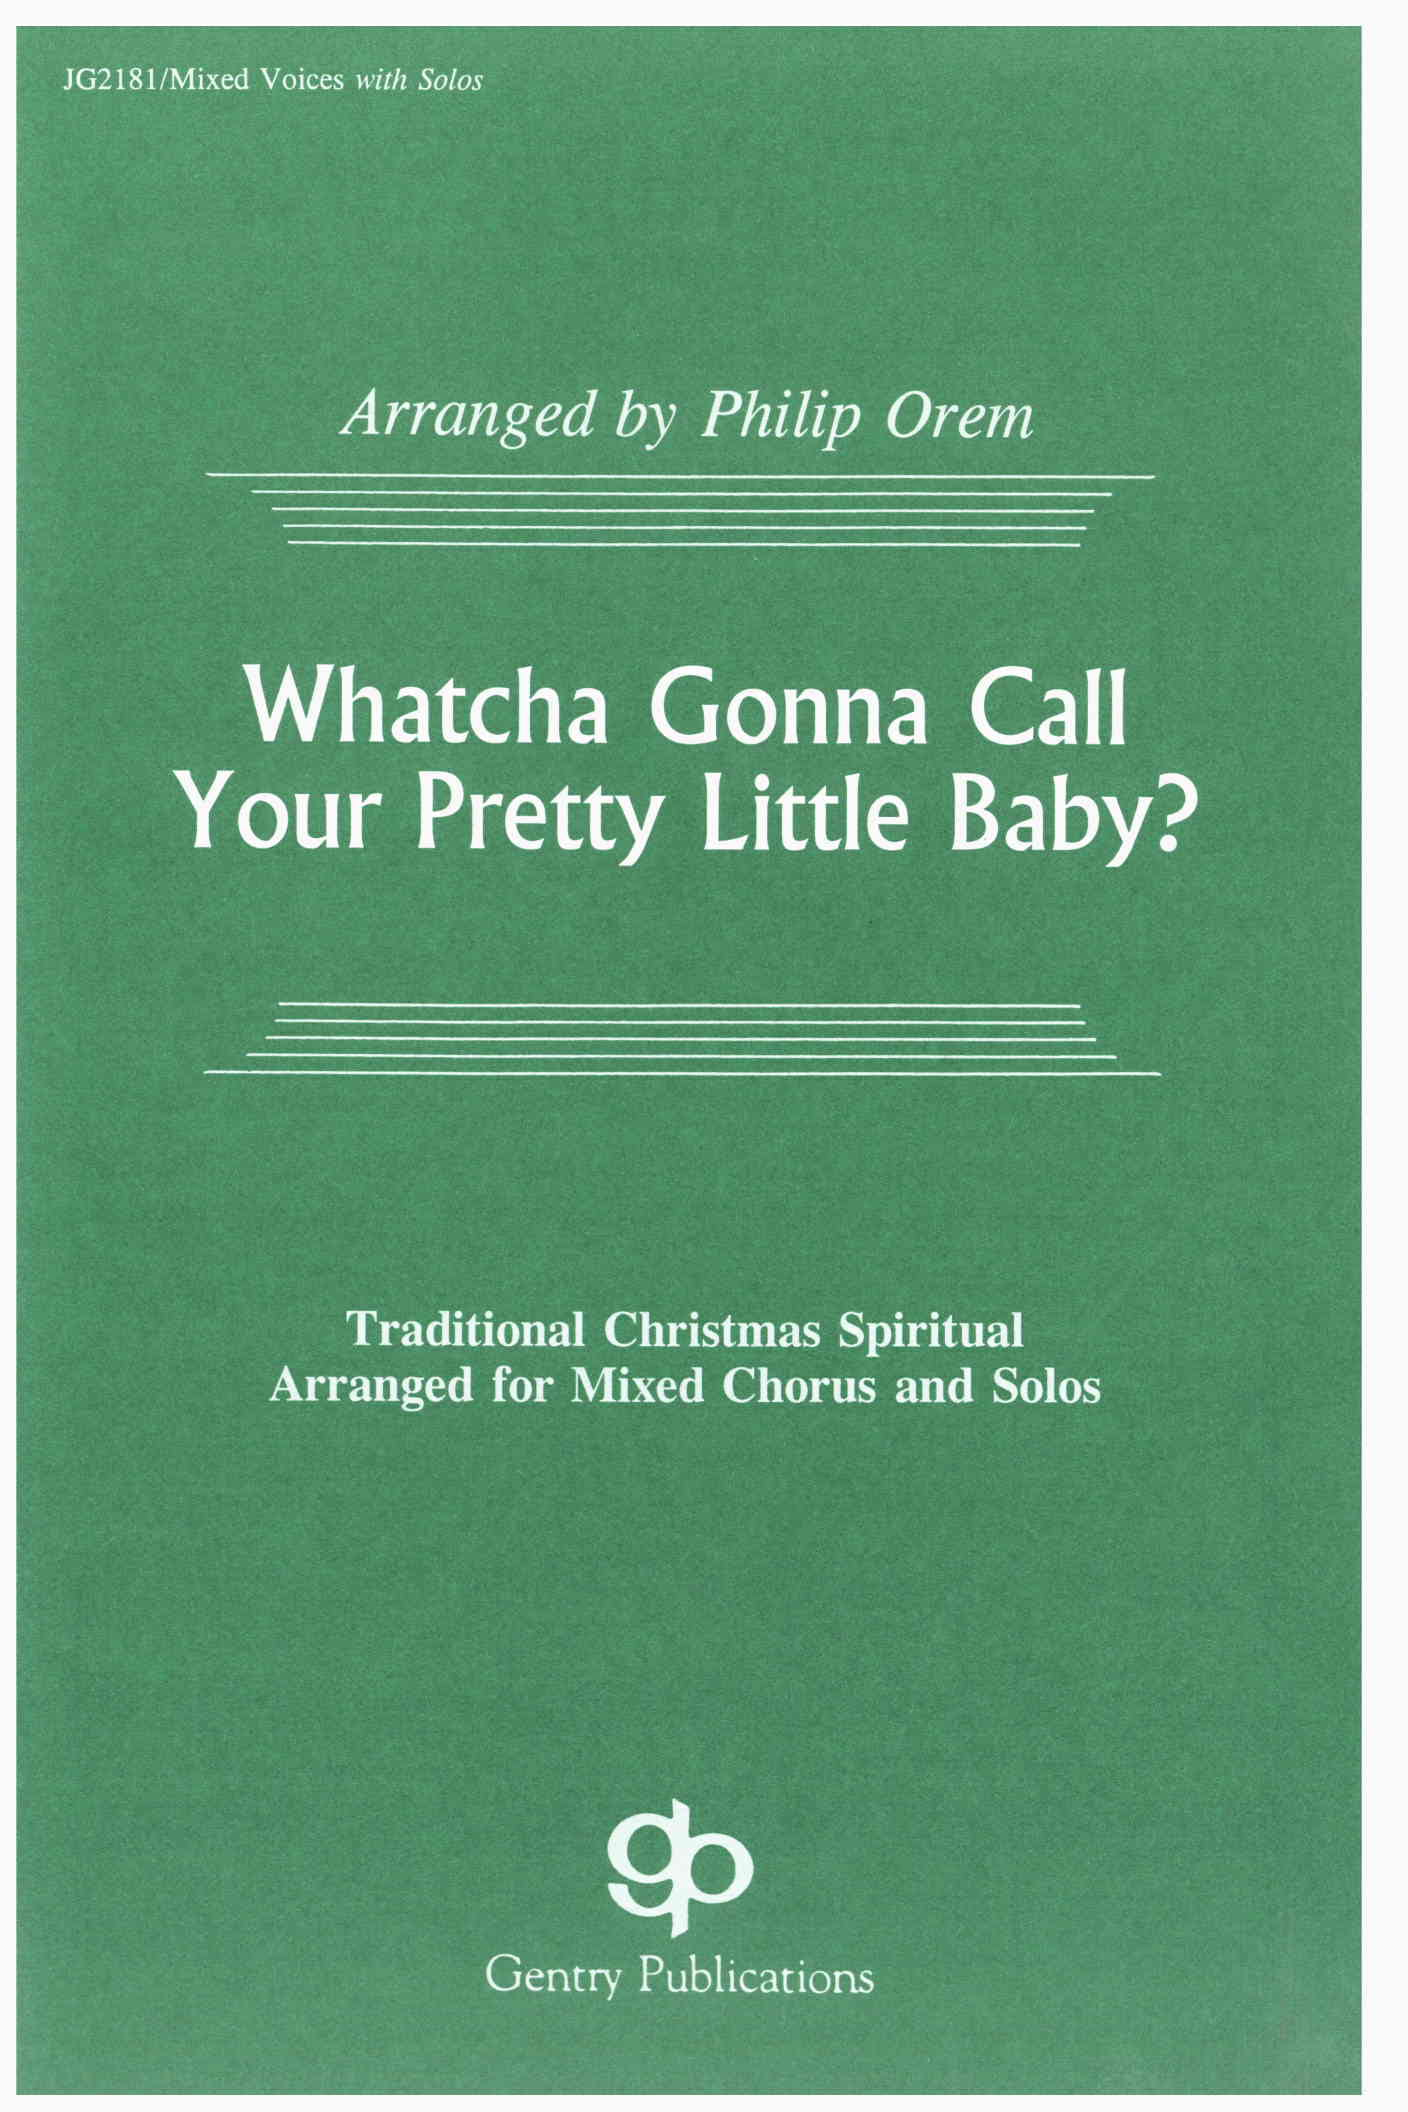 Whatcha Gonna Call Your Pretty Little Baby?